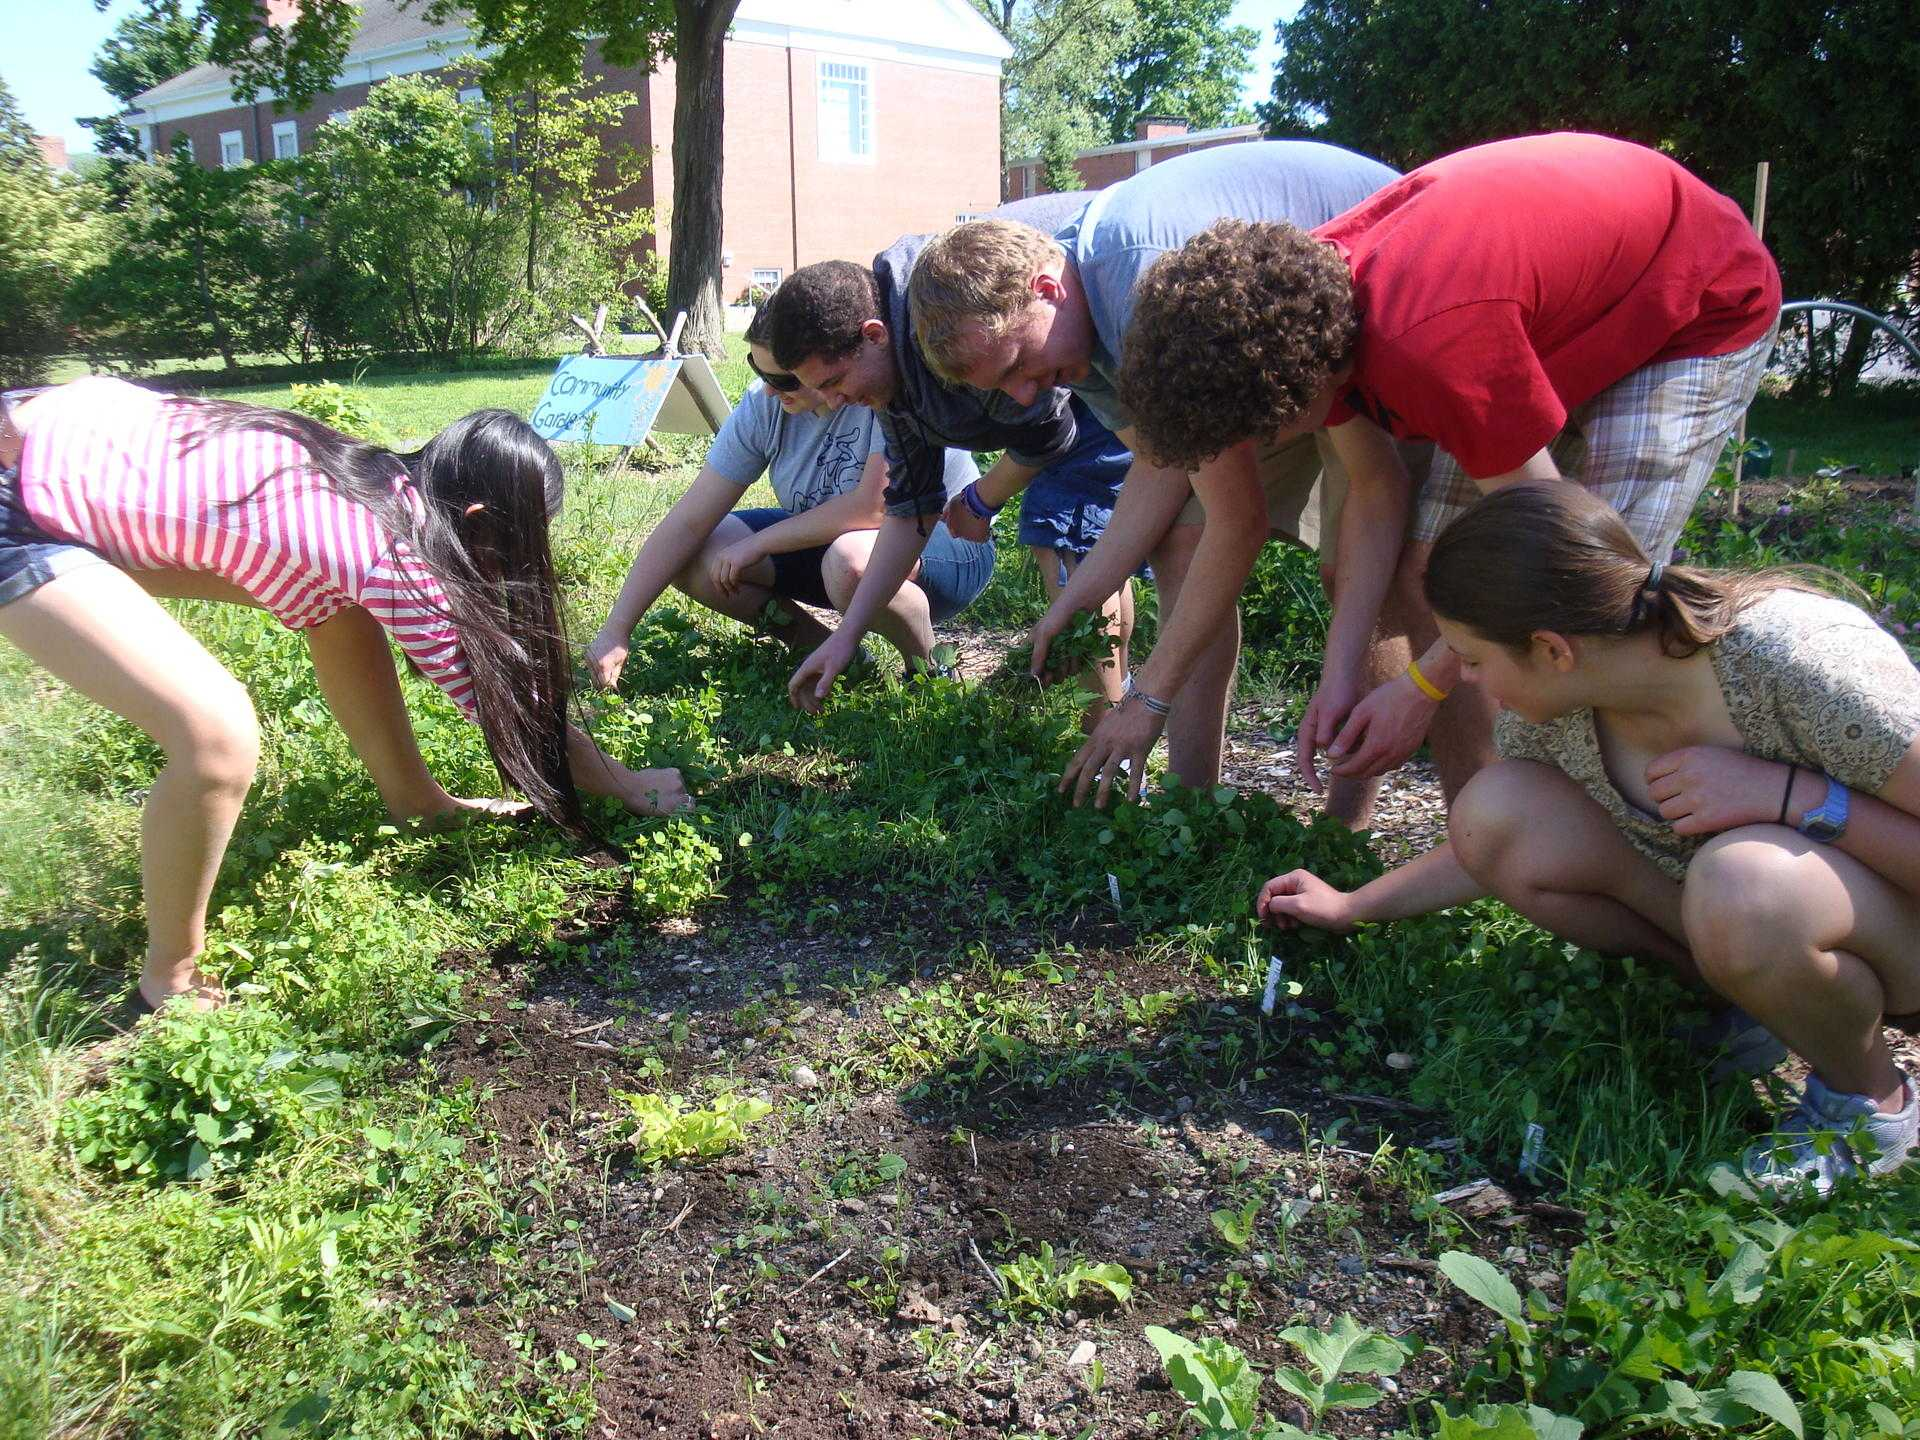 Students work to weed out the garden and plant new crops.